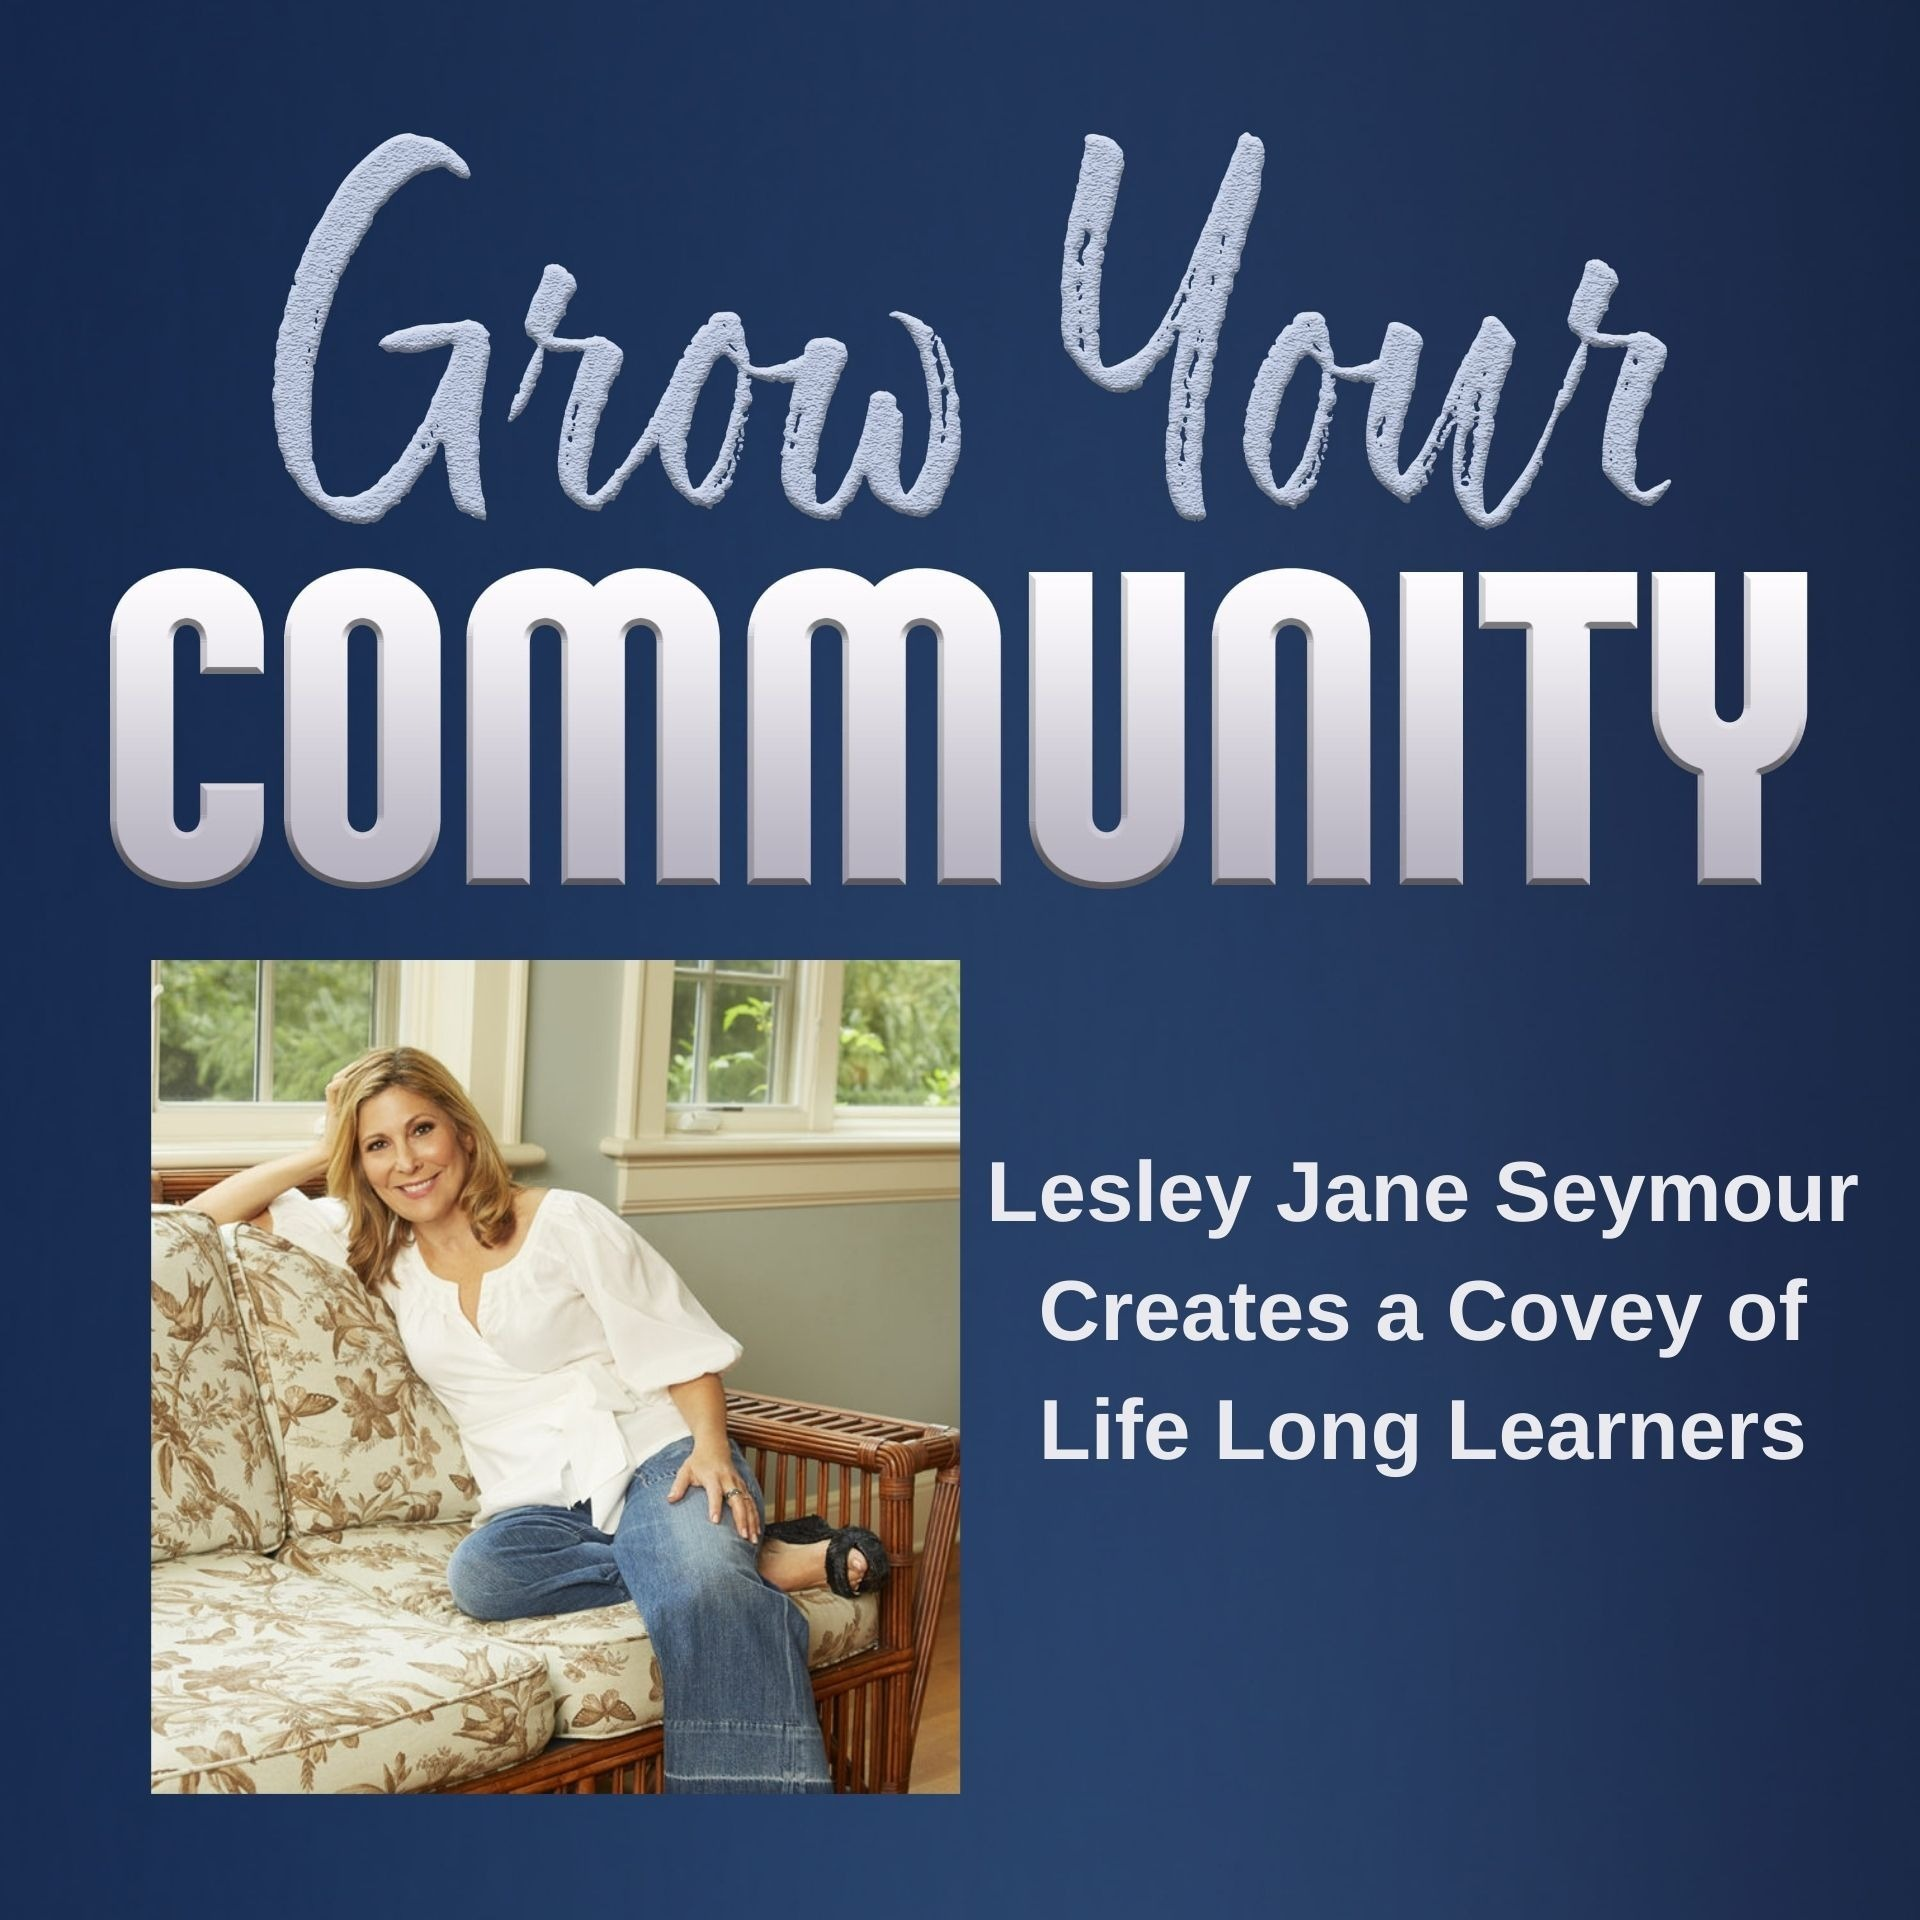 Lesley Jane Seymour Creates a Covey of Life Long Learners